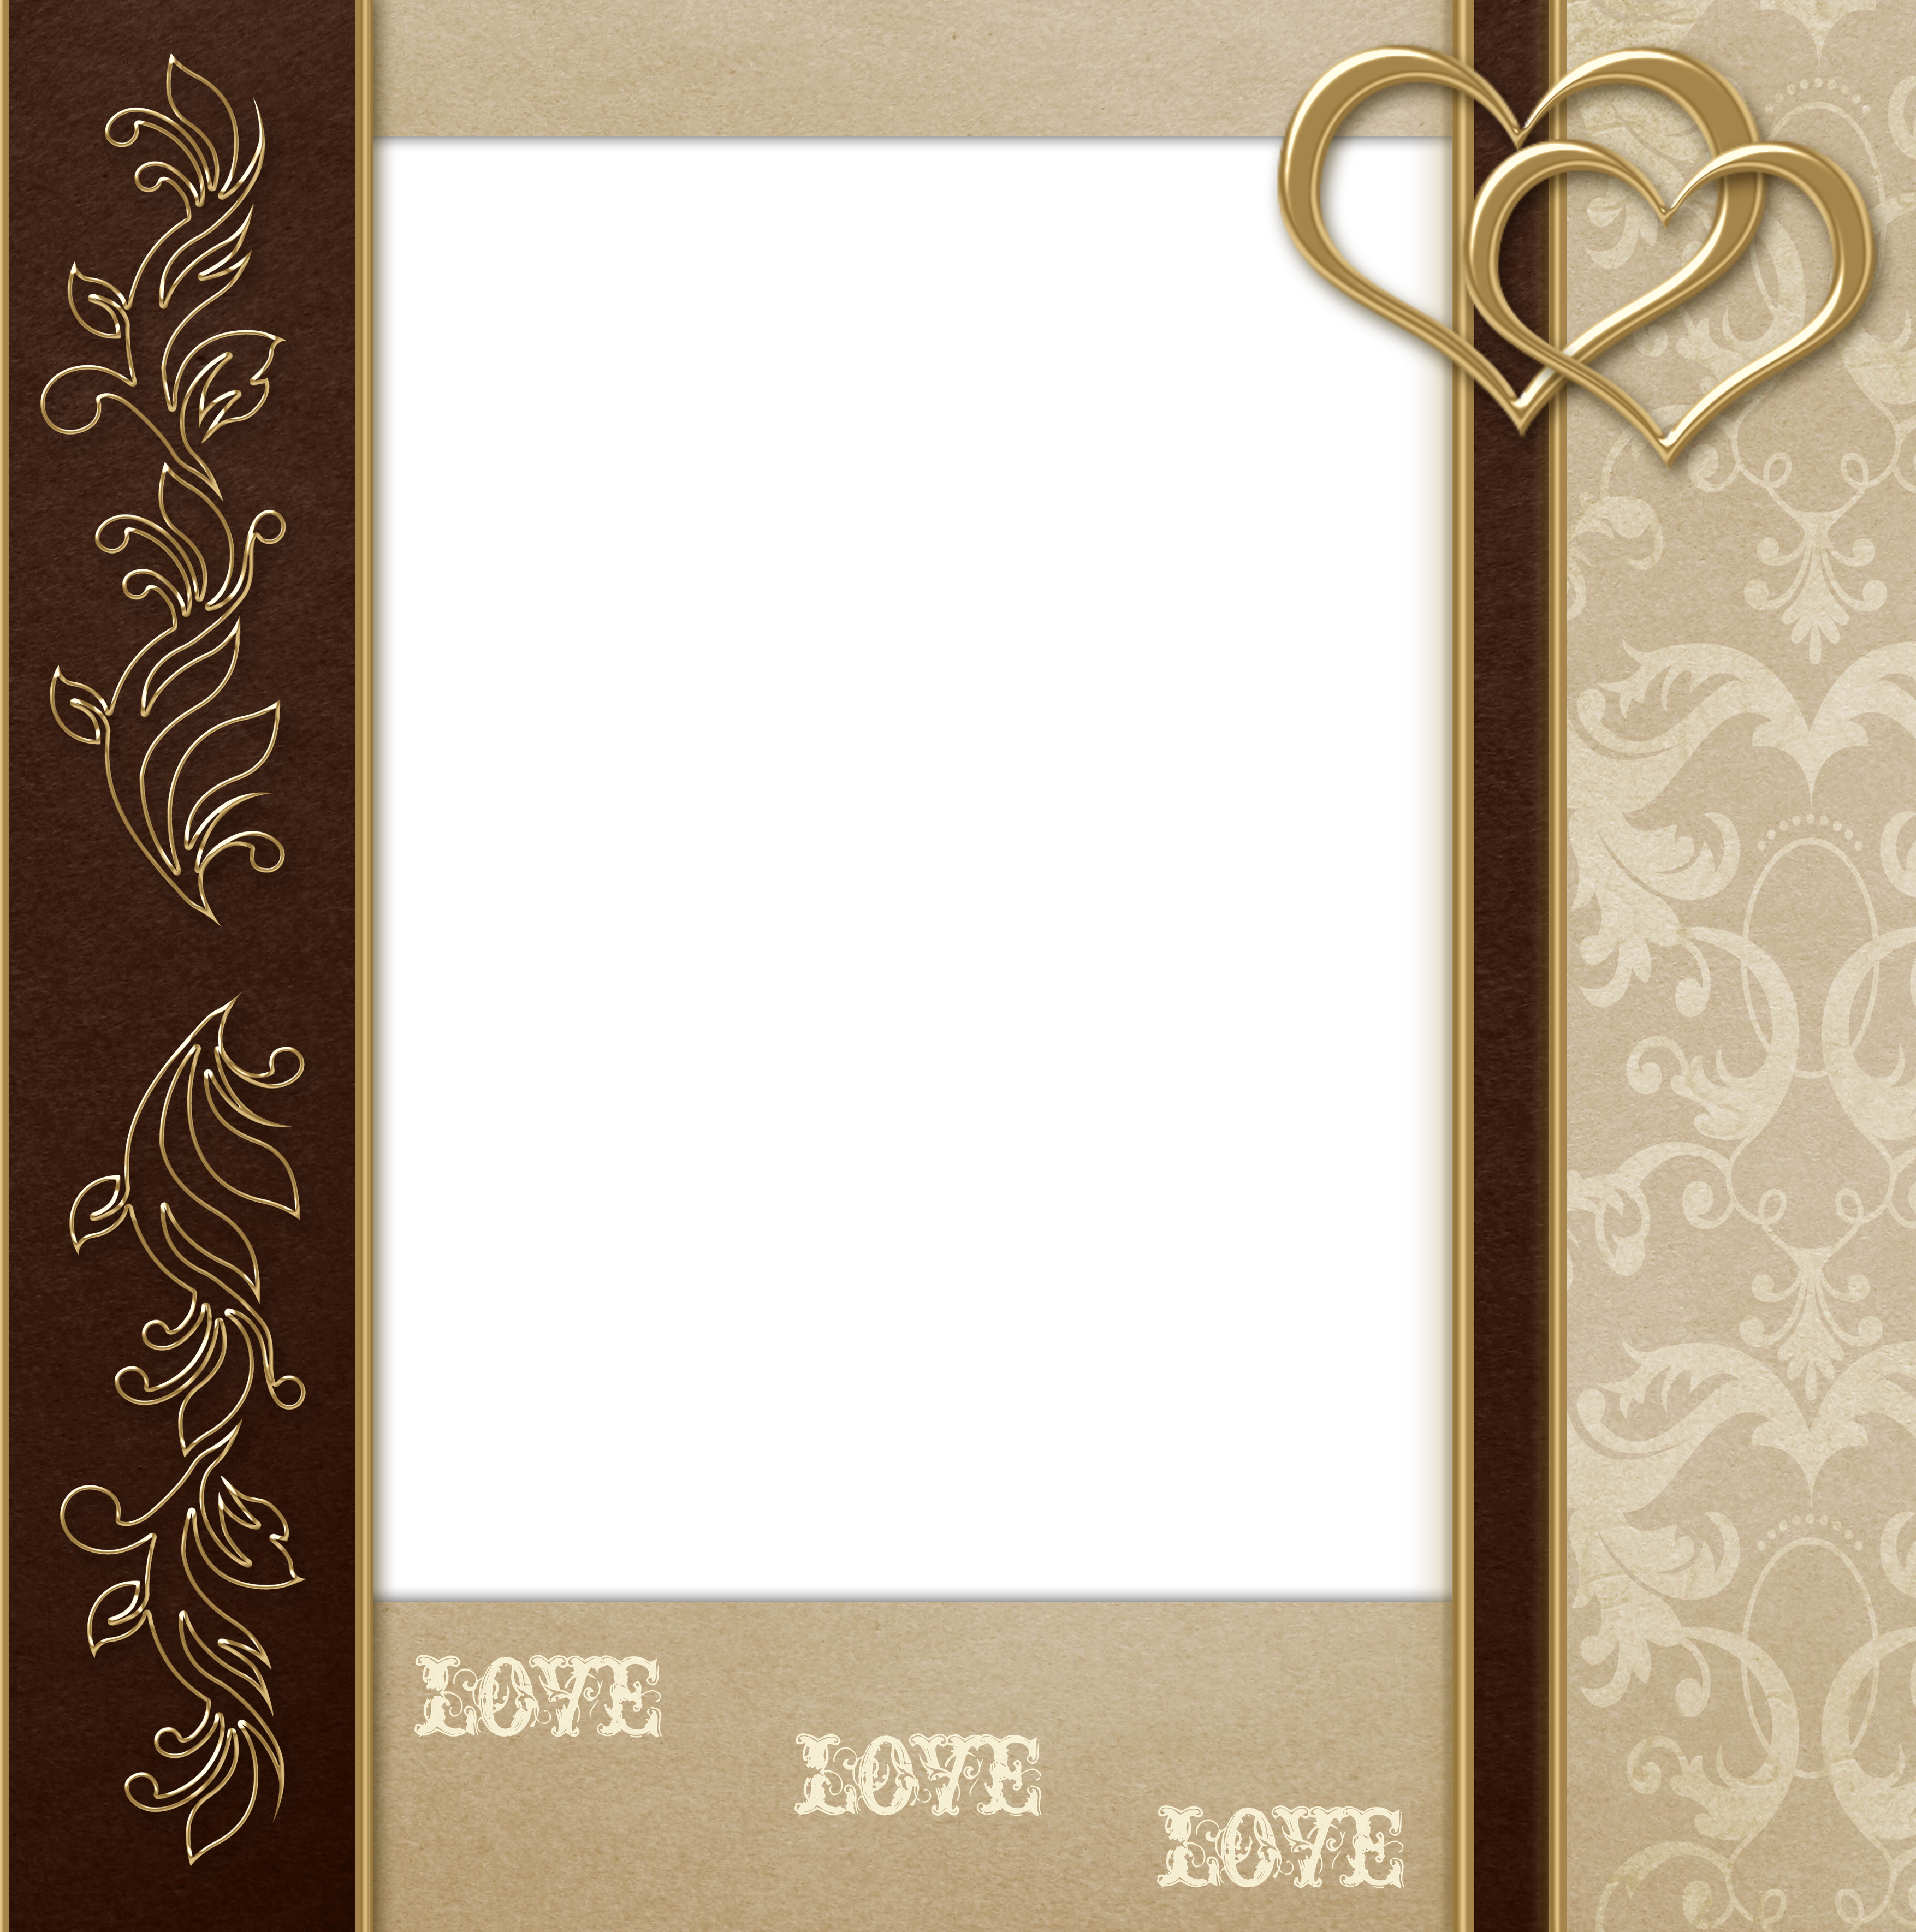 Marriage angels frames png. Stylish transparent brown and